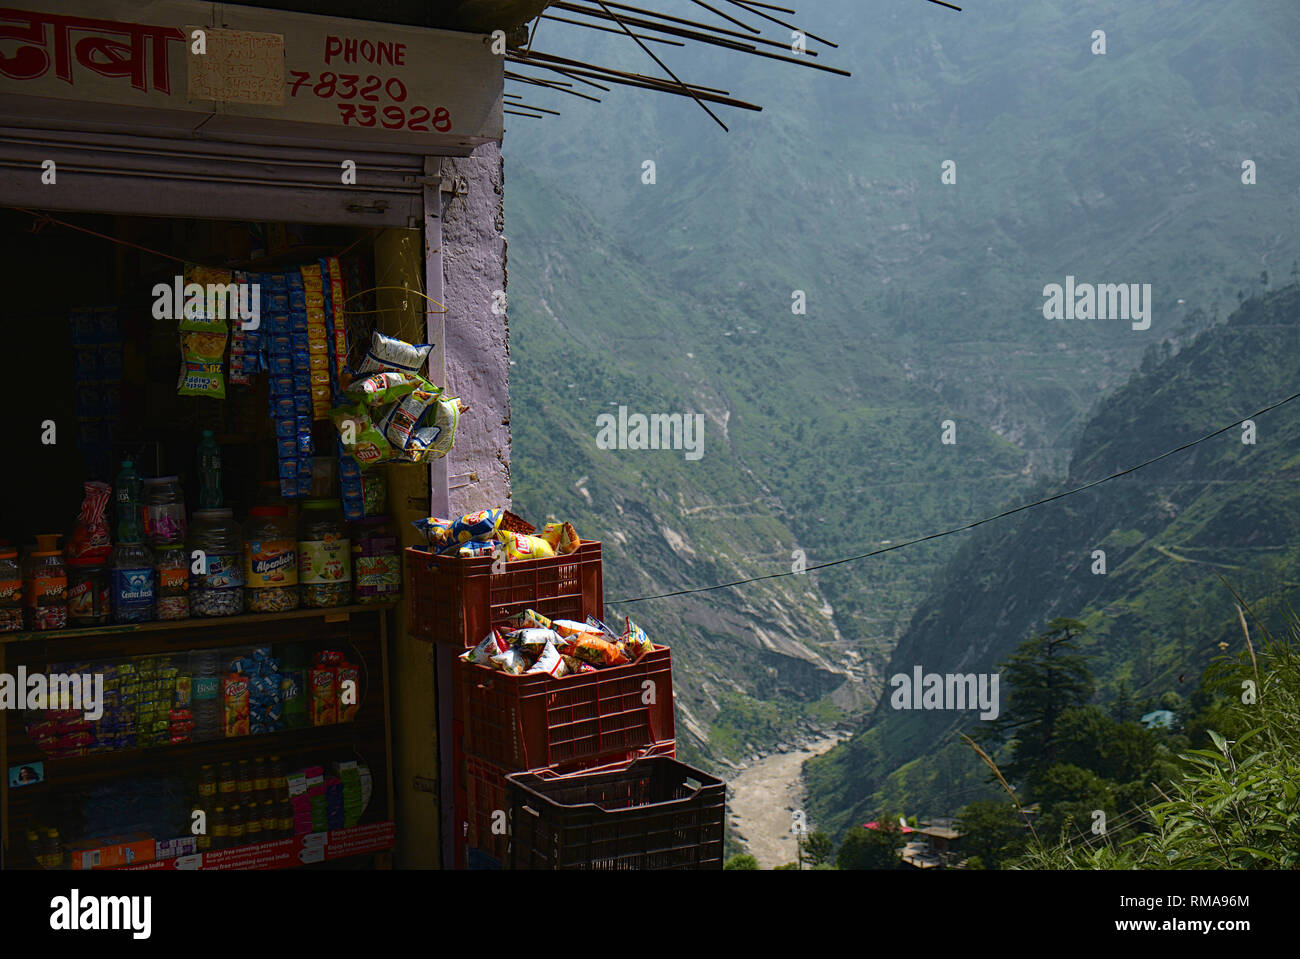 The formerly called Hindustan - Tibet road, going along the Sutlej river. - Stock Image